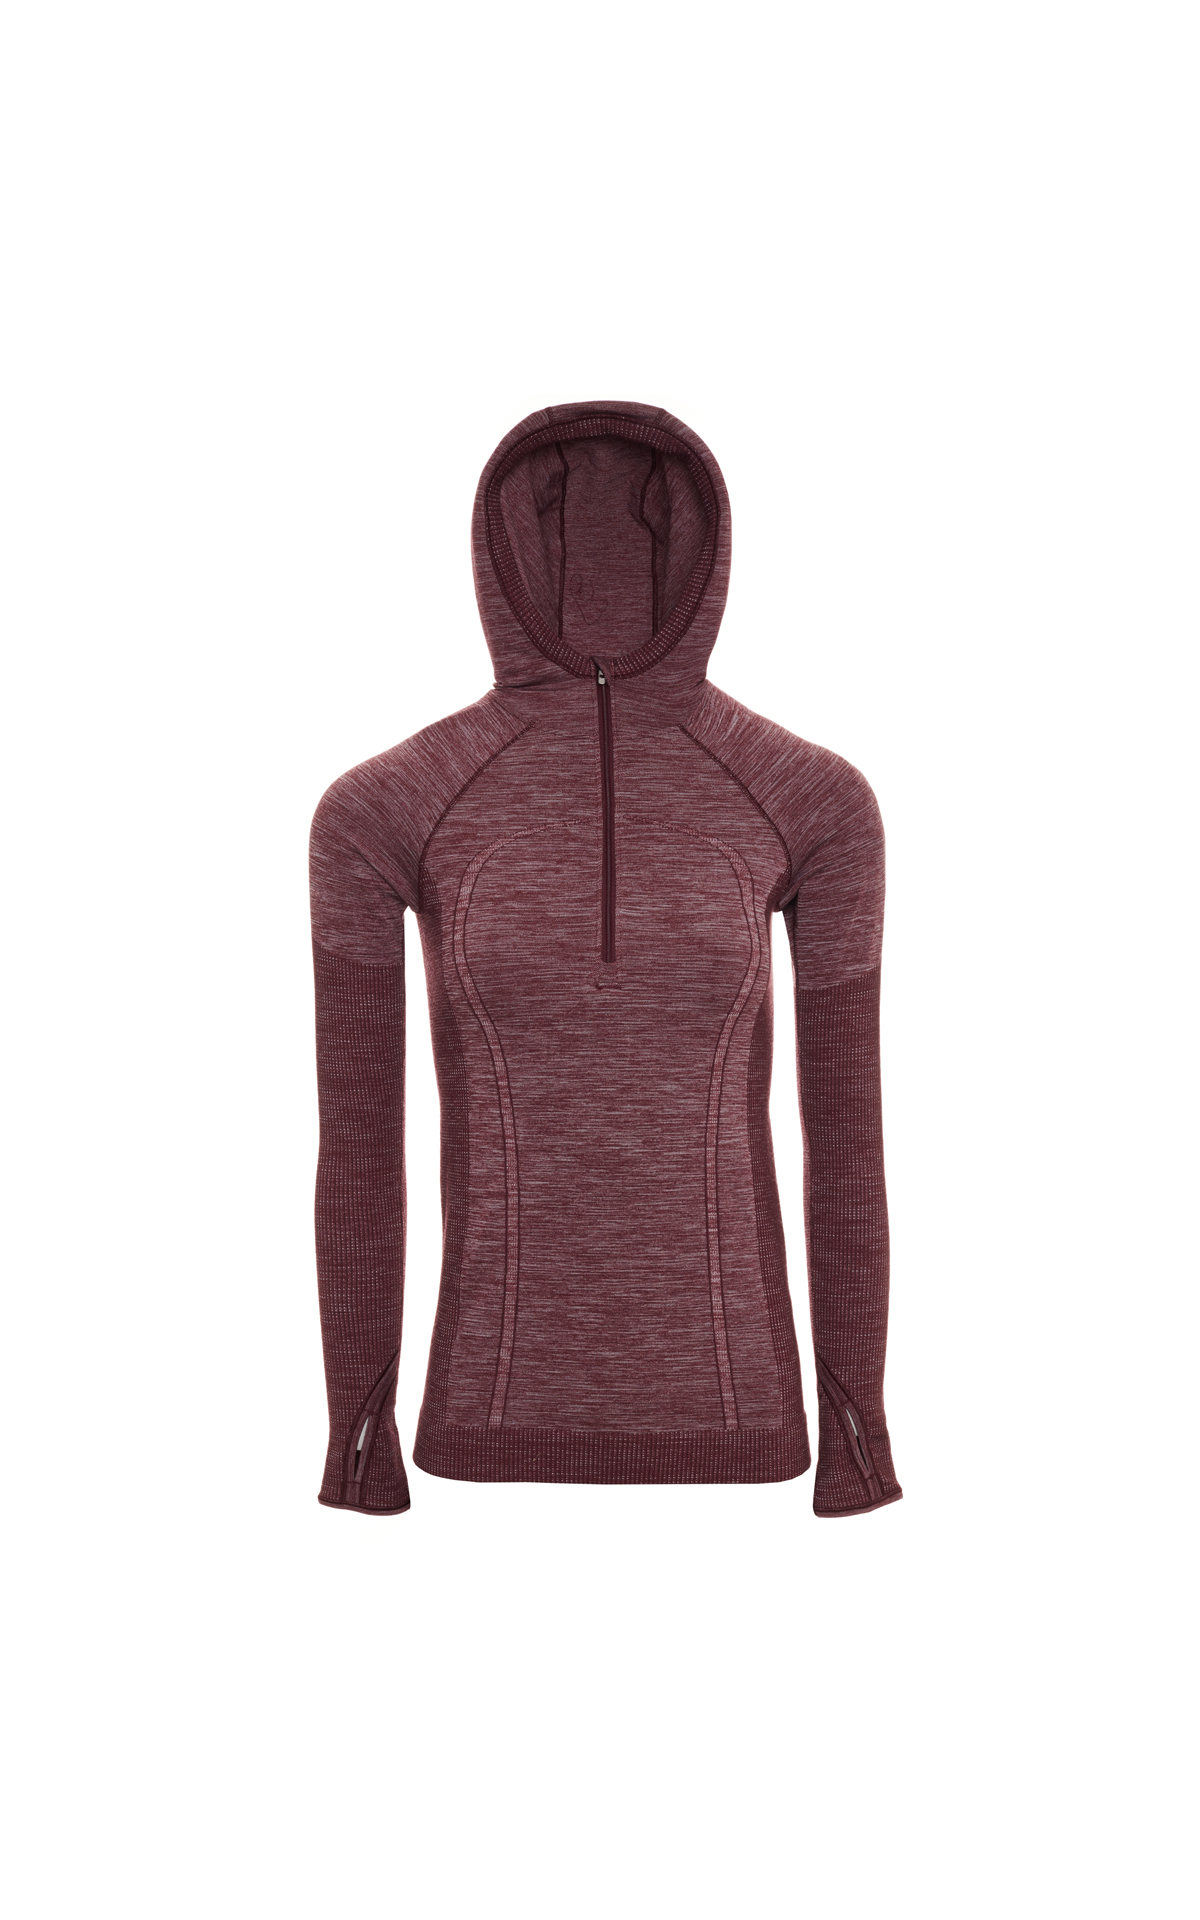 Lululemon  Swiftly wool half zip hoodie from Bicester Village